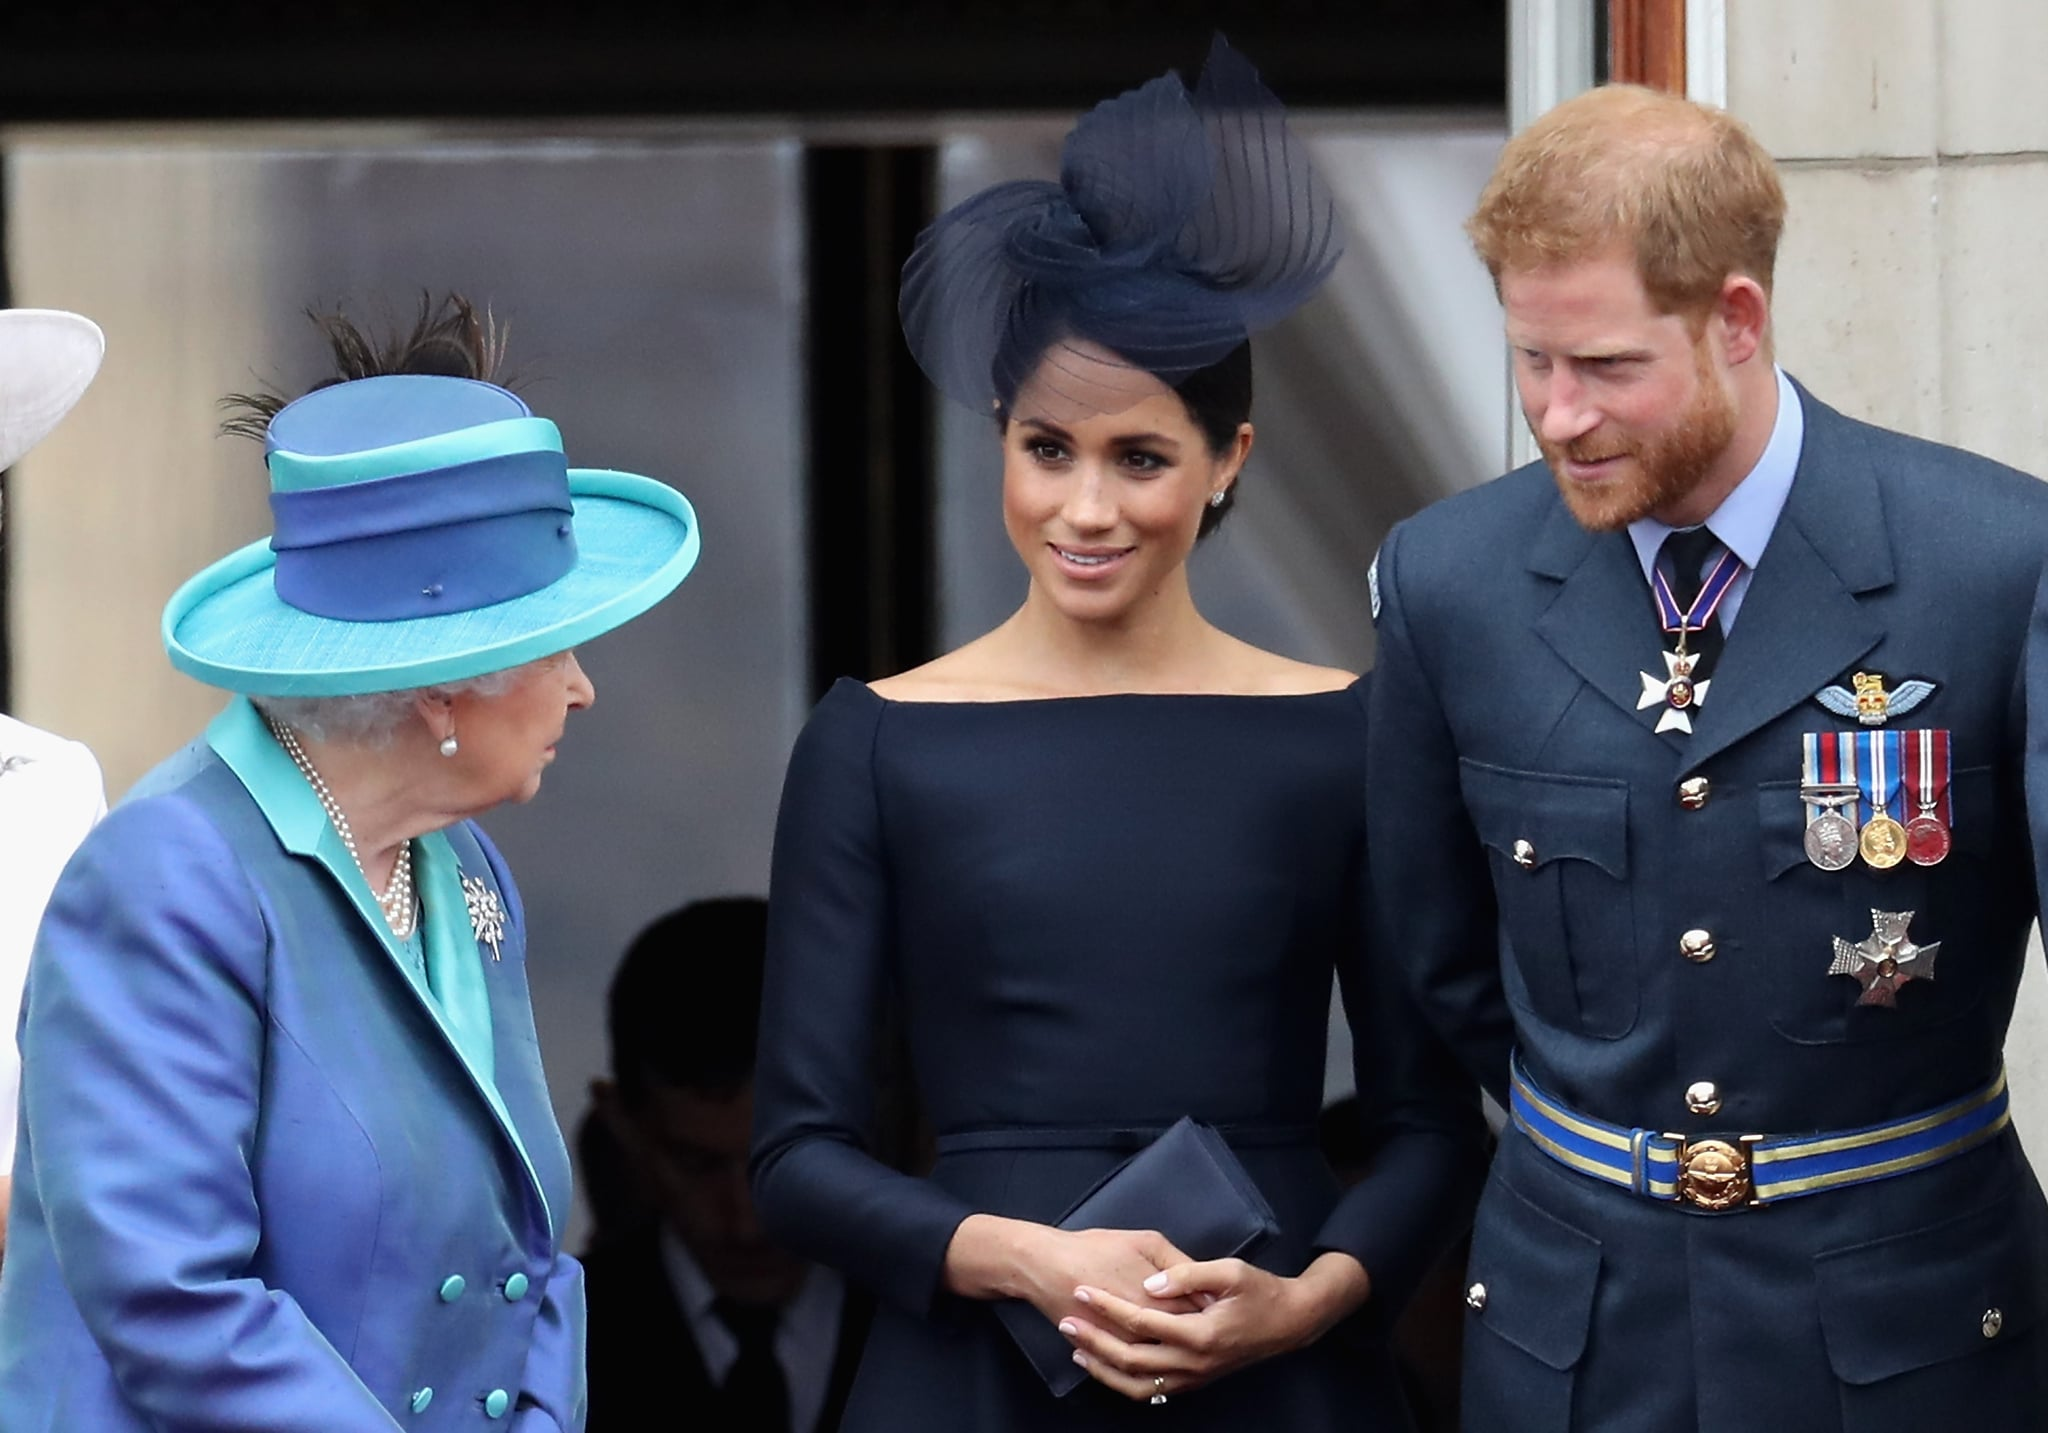 LONDON, ENGLAND - JULY 10:  (L-R)  Queen Elizabeth II, Meghan, Duchess of Sussex, Prince Harry, Duke of Sussex watch the RAF flypast on the balcony of Buckingham Palace, as members of the Royal Family attend events to mark the centenary of the RAF on July 10, 2018 in London, England.  (Photo by Chris Jackson/Getty Images)